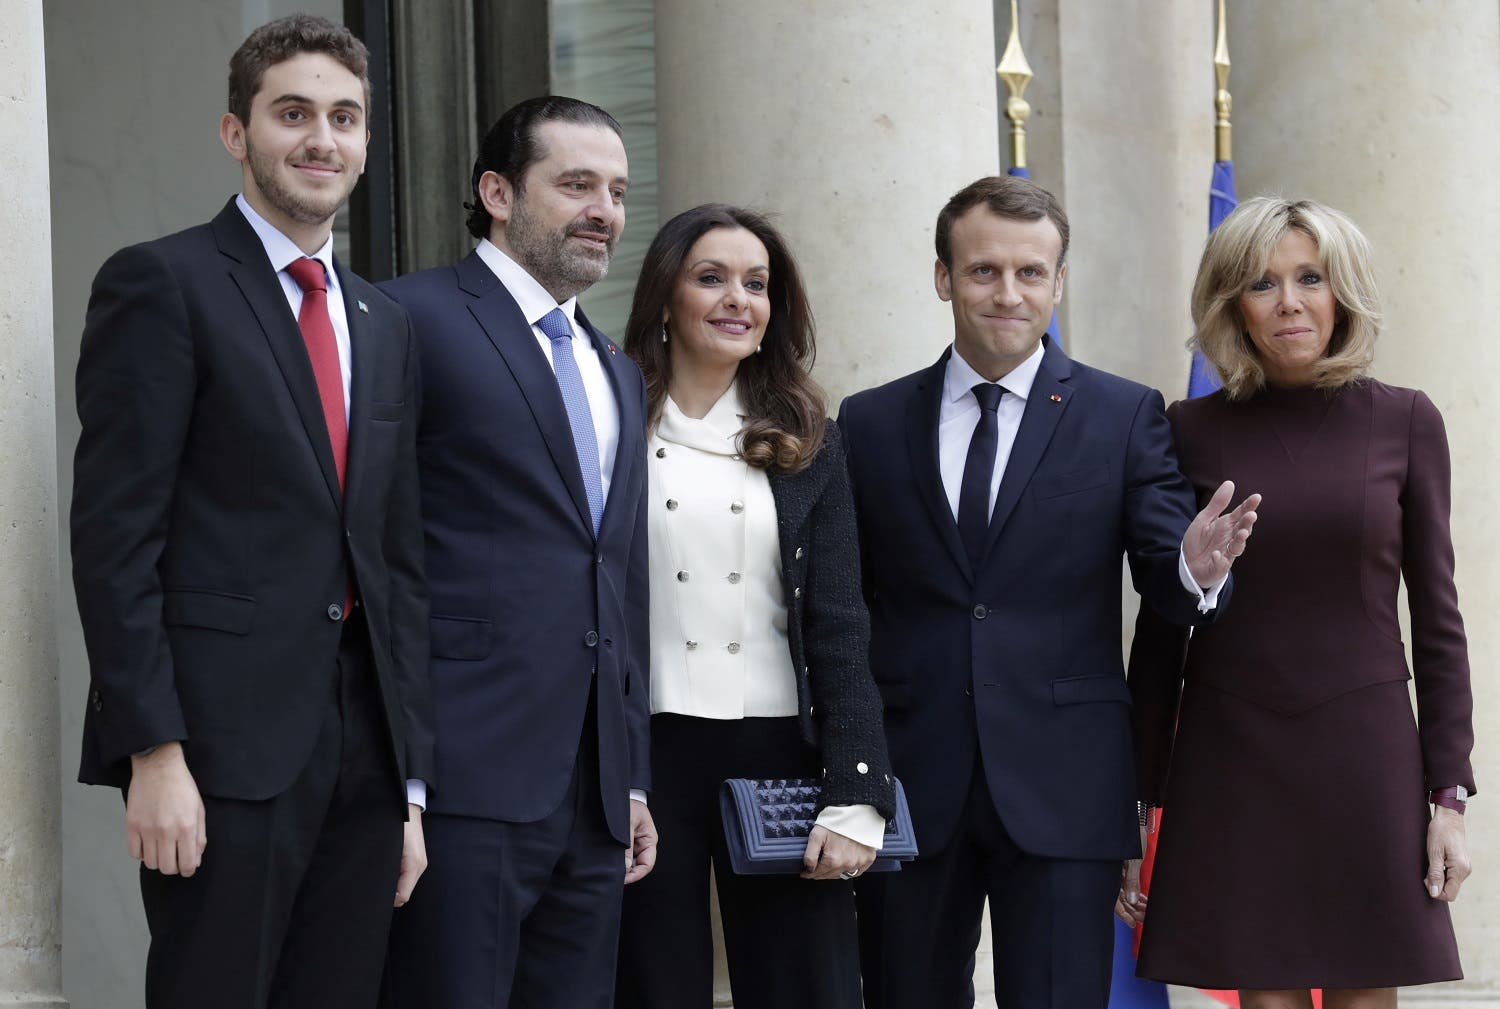 French President Macron (4R) and his wife Brigitte Macron (R) welcome Lebanese Prime Minister Saad Hariri (2R), his wife Lara Bachir El-Alzm (3R) and their son Houssam (L) at the Elysee Presidential Palace on November 18, 2017. (AFP)